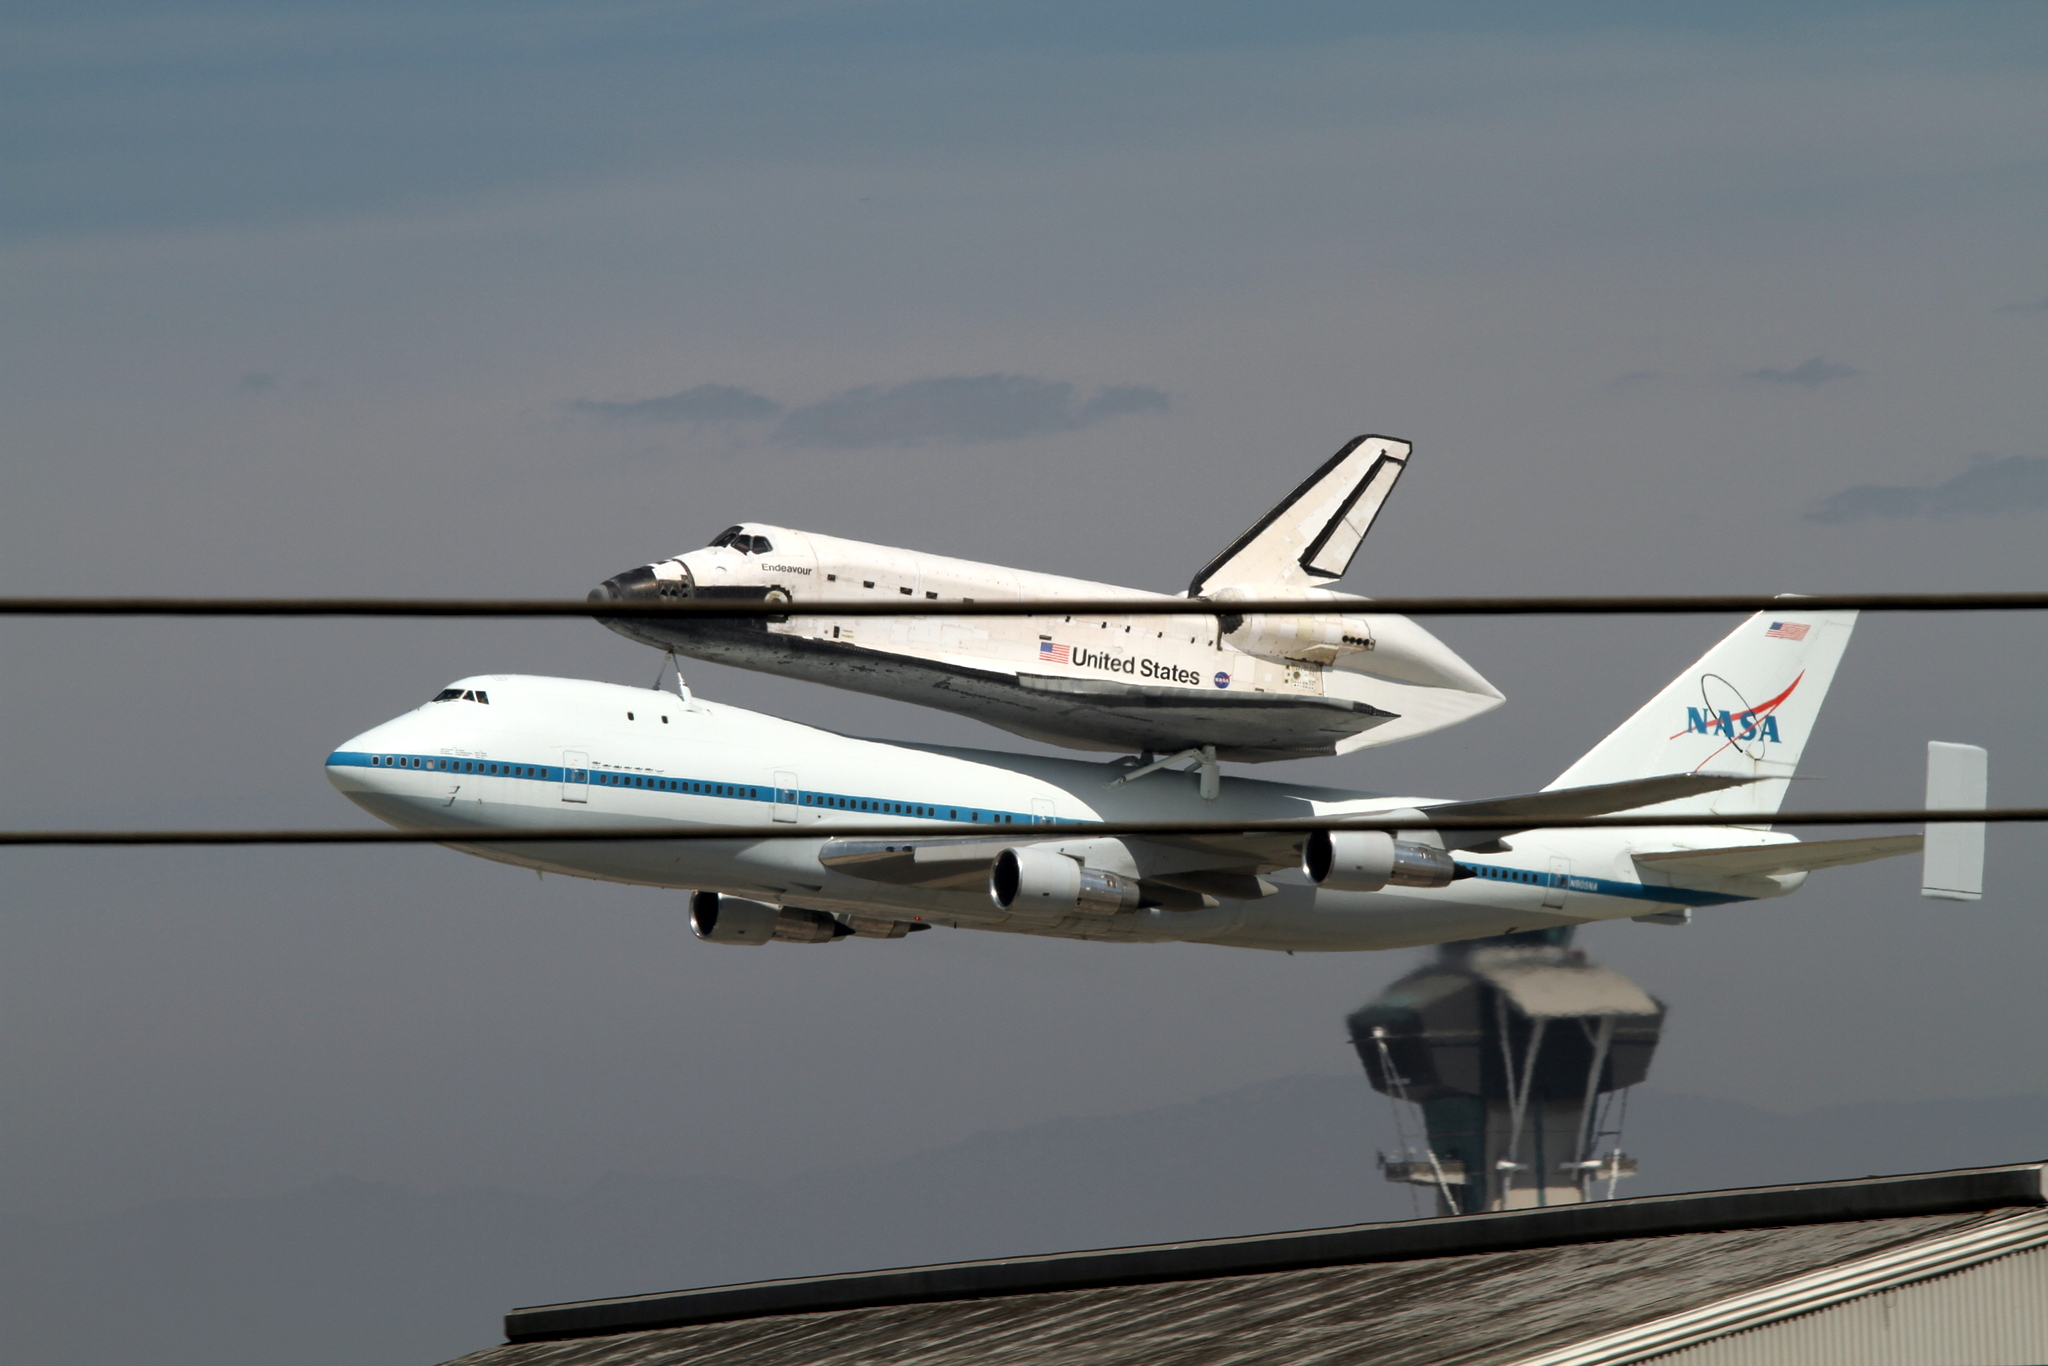 space-shuttle-endeavour-lax